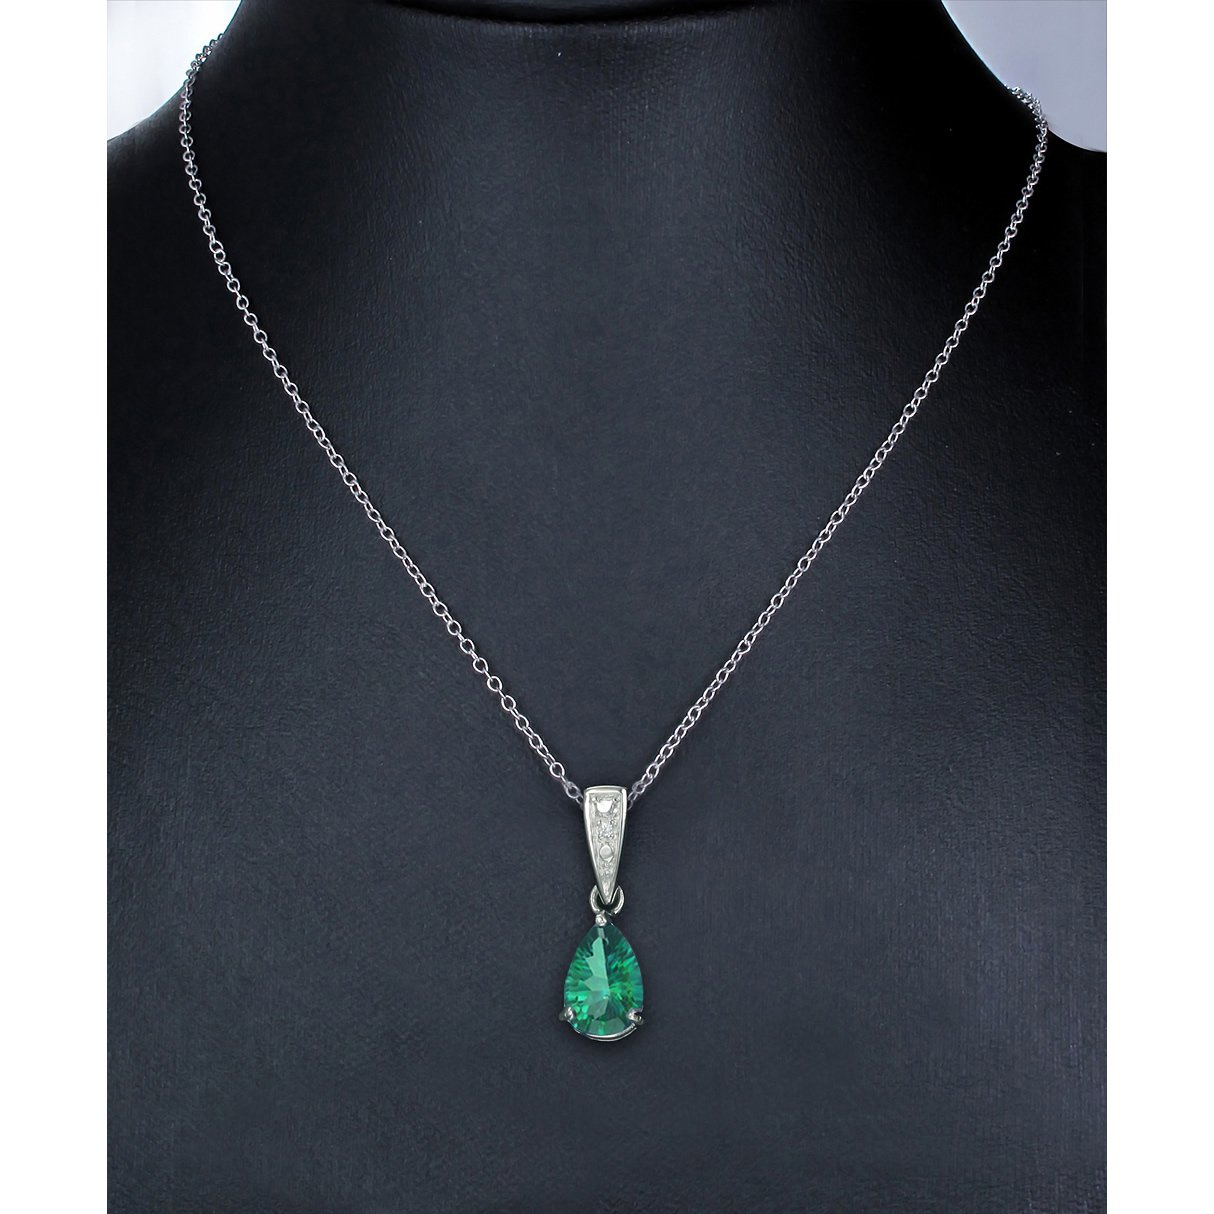 Sterling Silver Green Topaz Pendant 1.50 CT With 18 Inch Chain